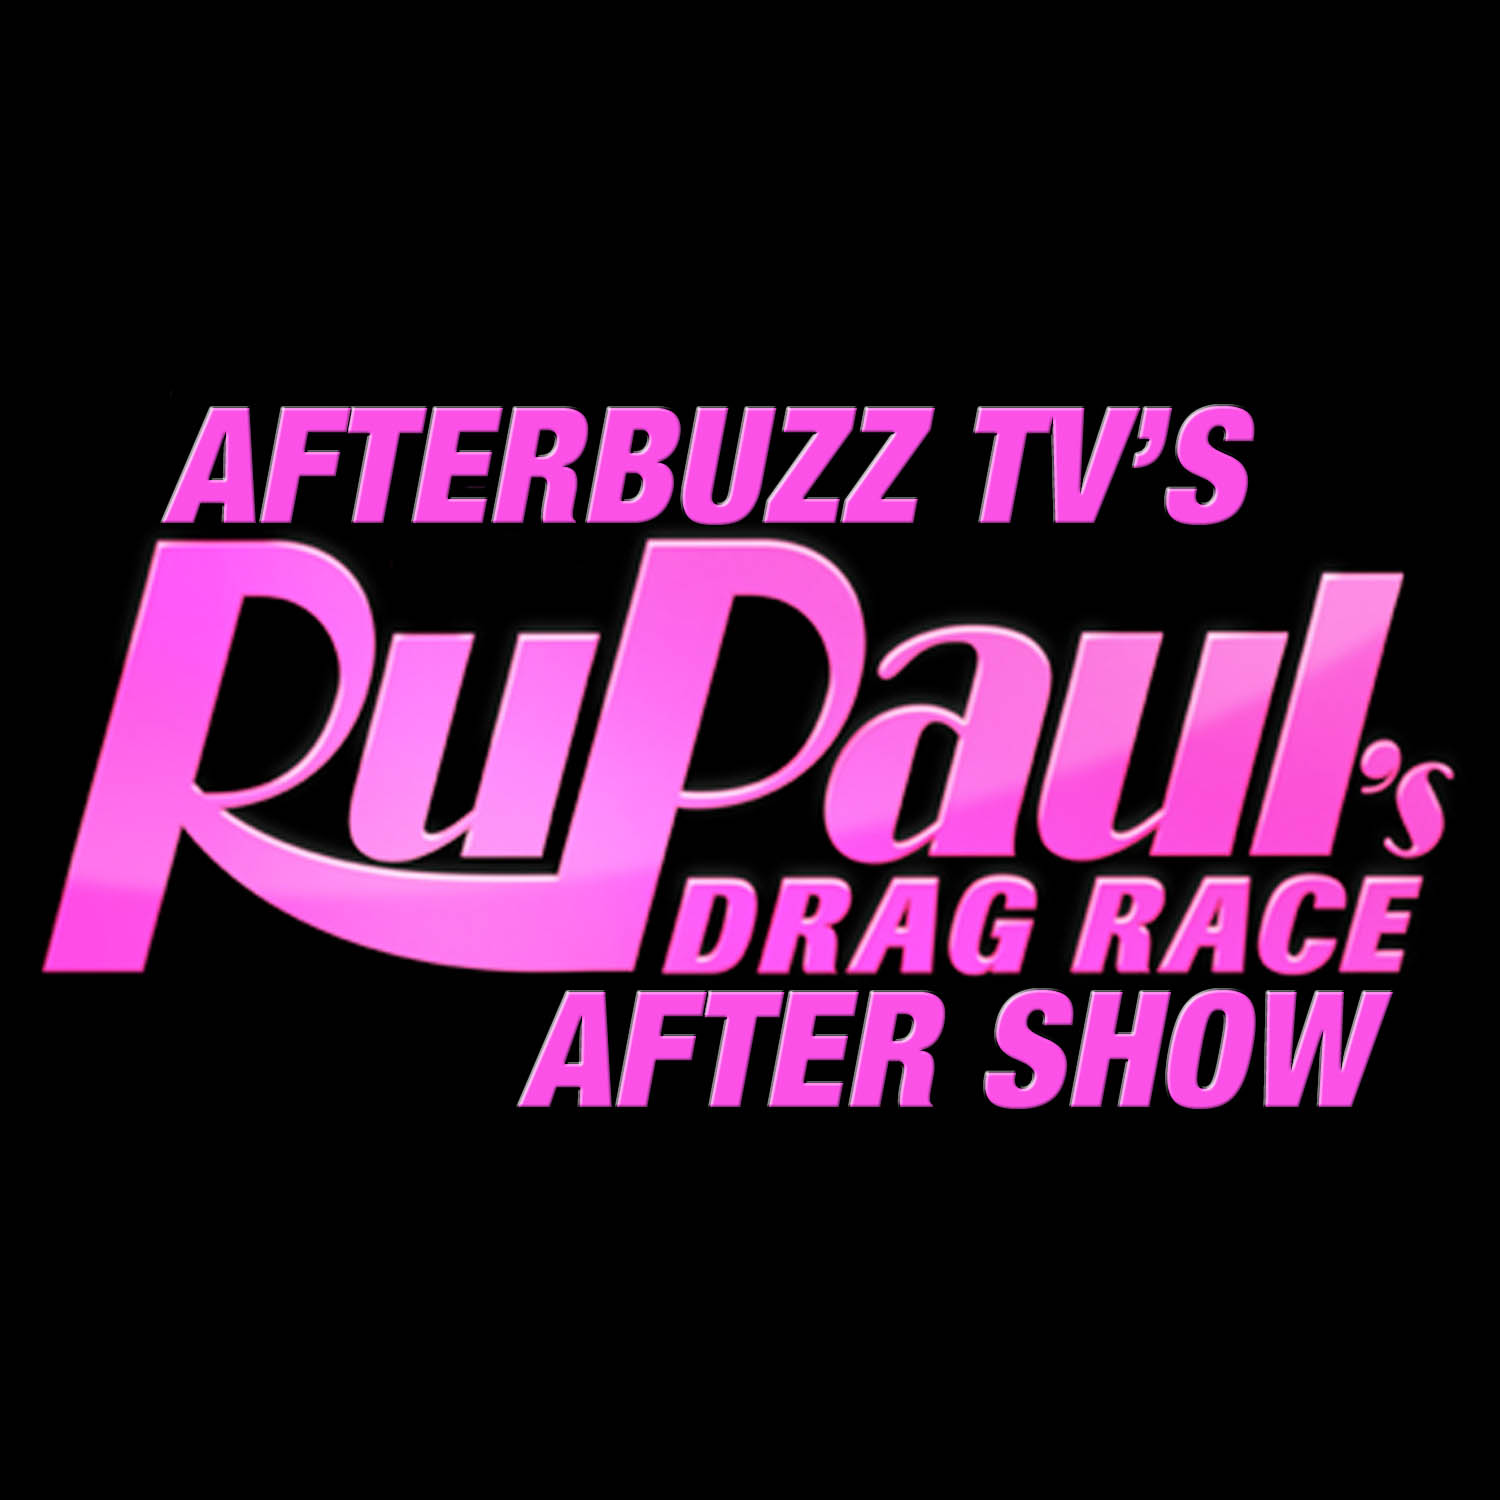 RuPaul's Drag Race After Show